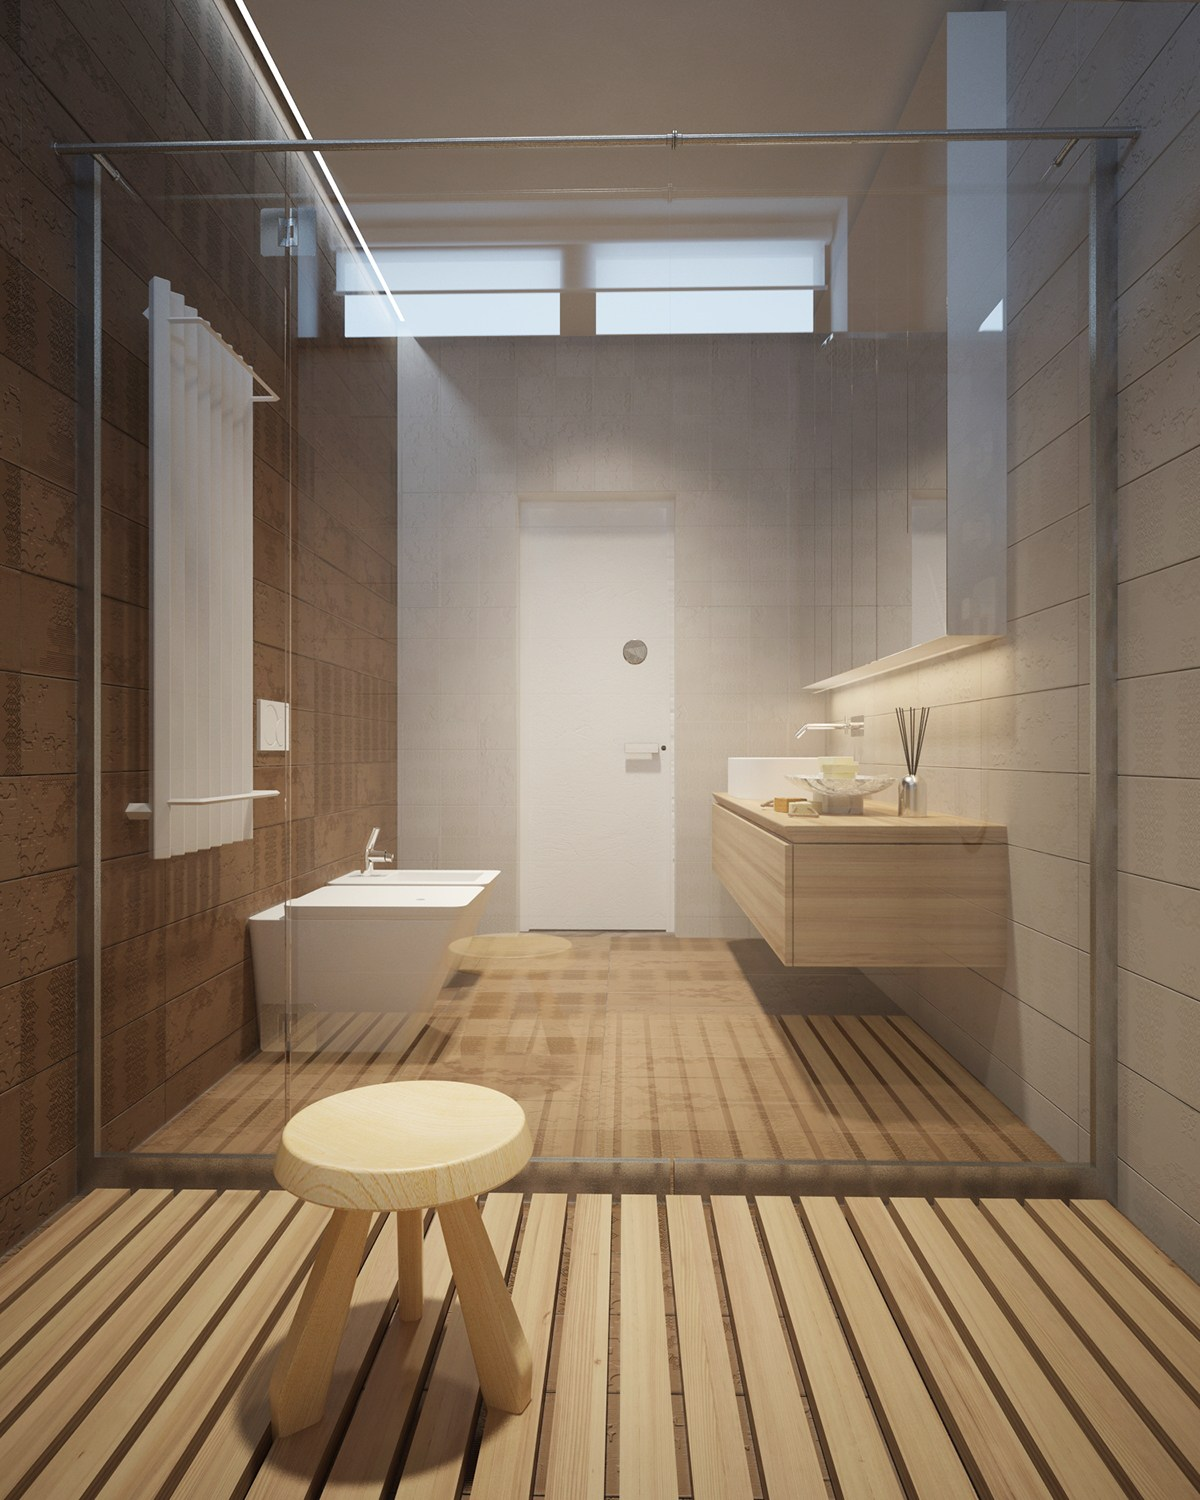 Wood Shower Floor WB Designs - Wood Shower Floor WB Designs